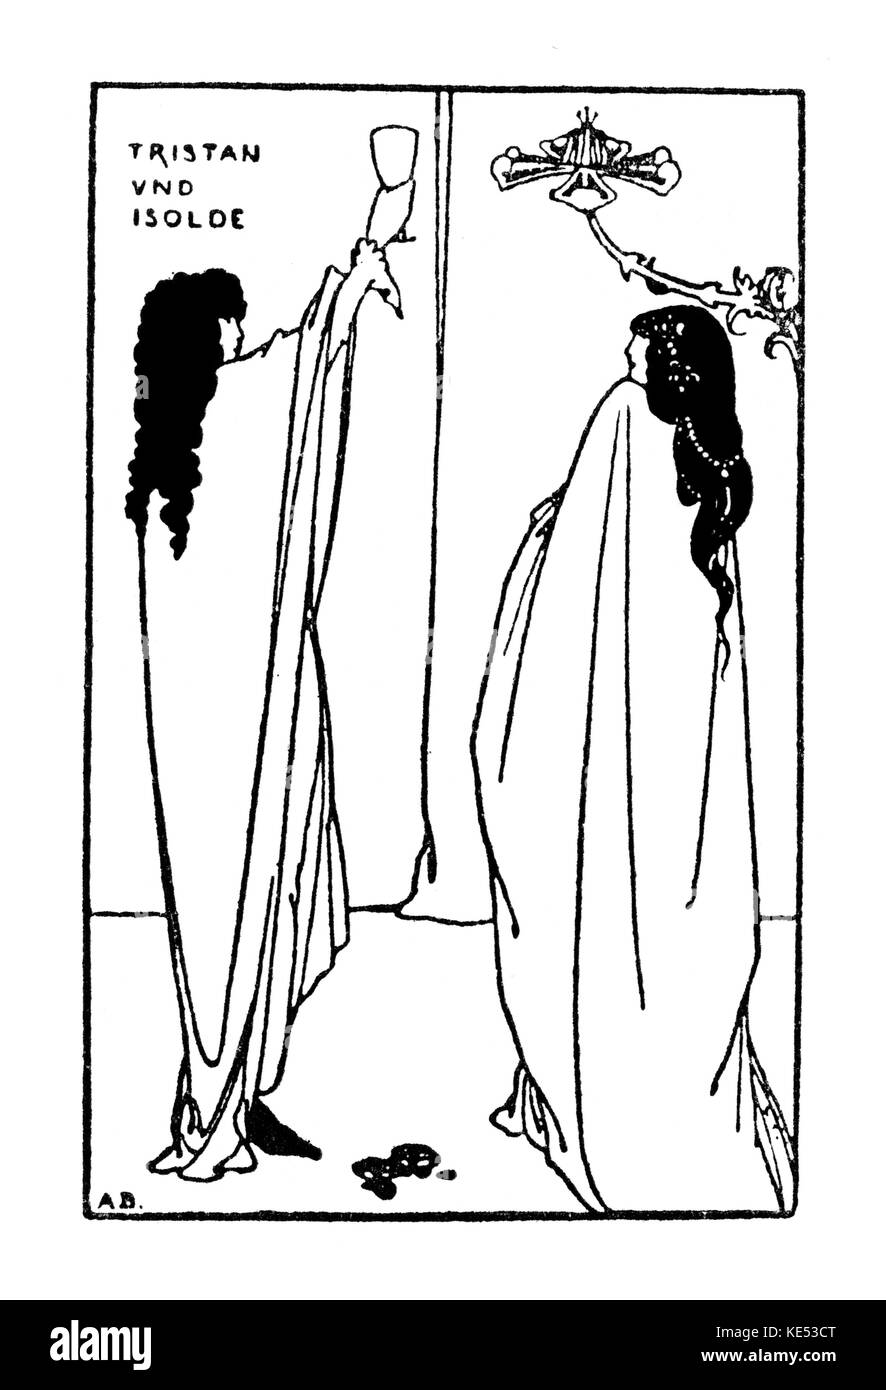 Richard Wagner 's Tristan und Isolde. Drawing by Aubrey Beardsley, 1896. RW:  German composer & author, - Stock Image